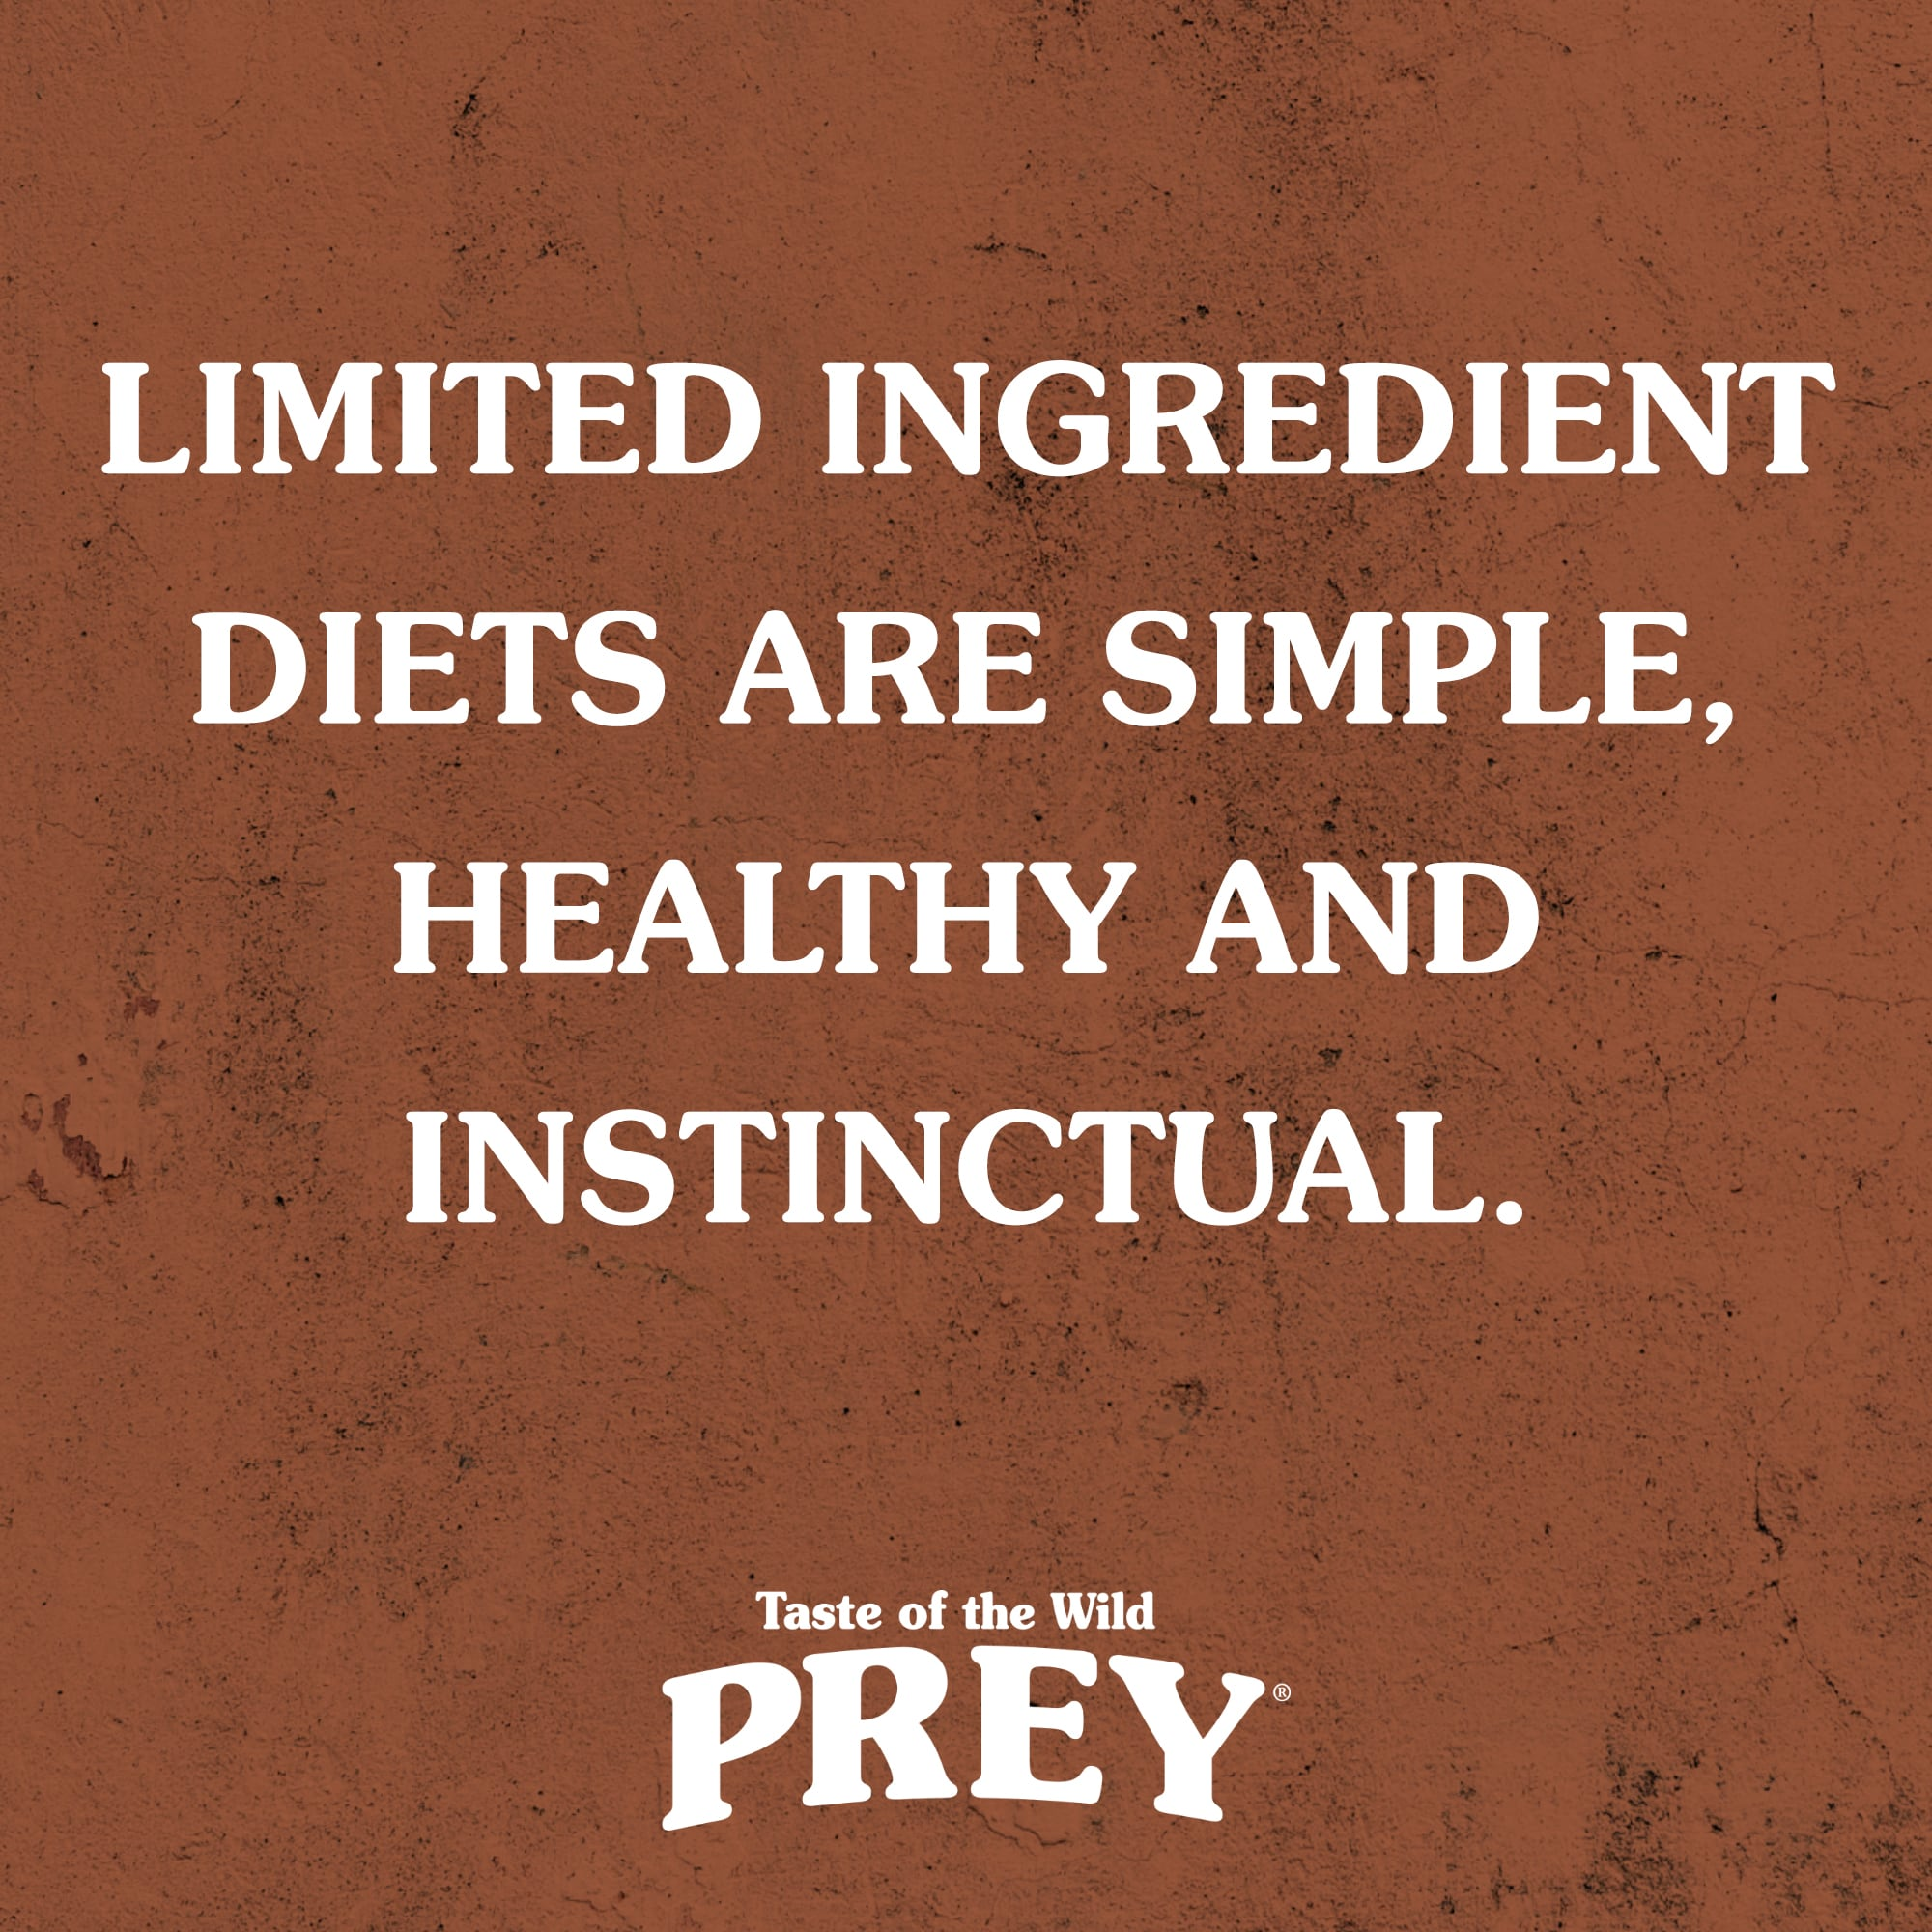 Limited-Ingredient Diets Are Simple, Healthy and Instinctual.